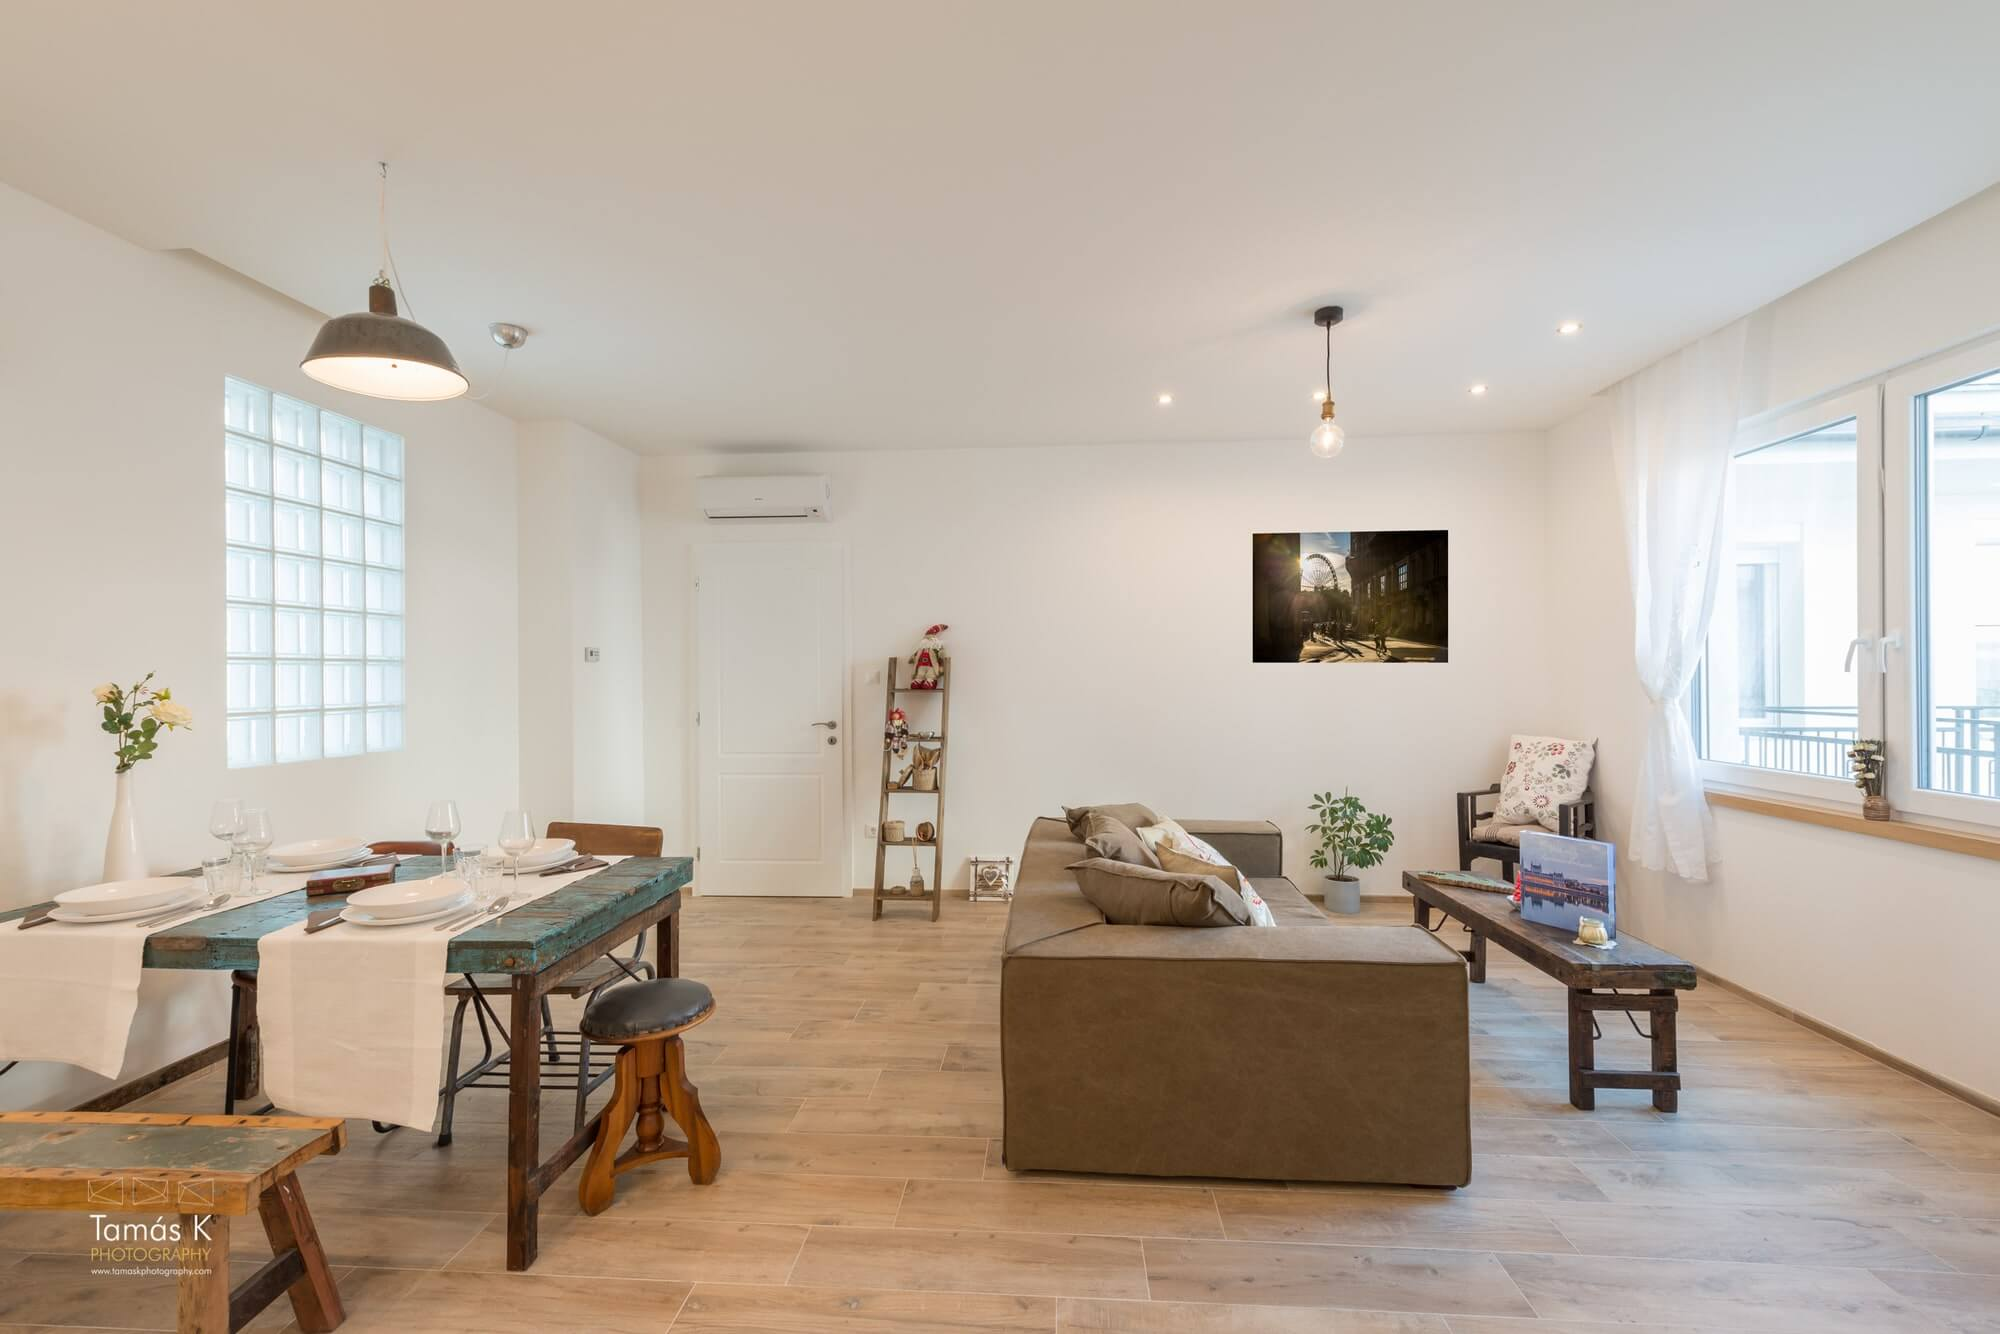 Serviced apartment Budapest - living and dining area